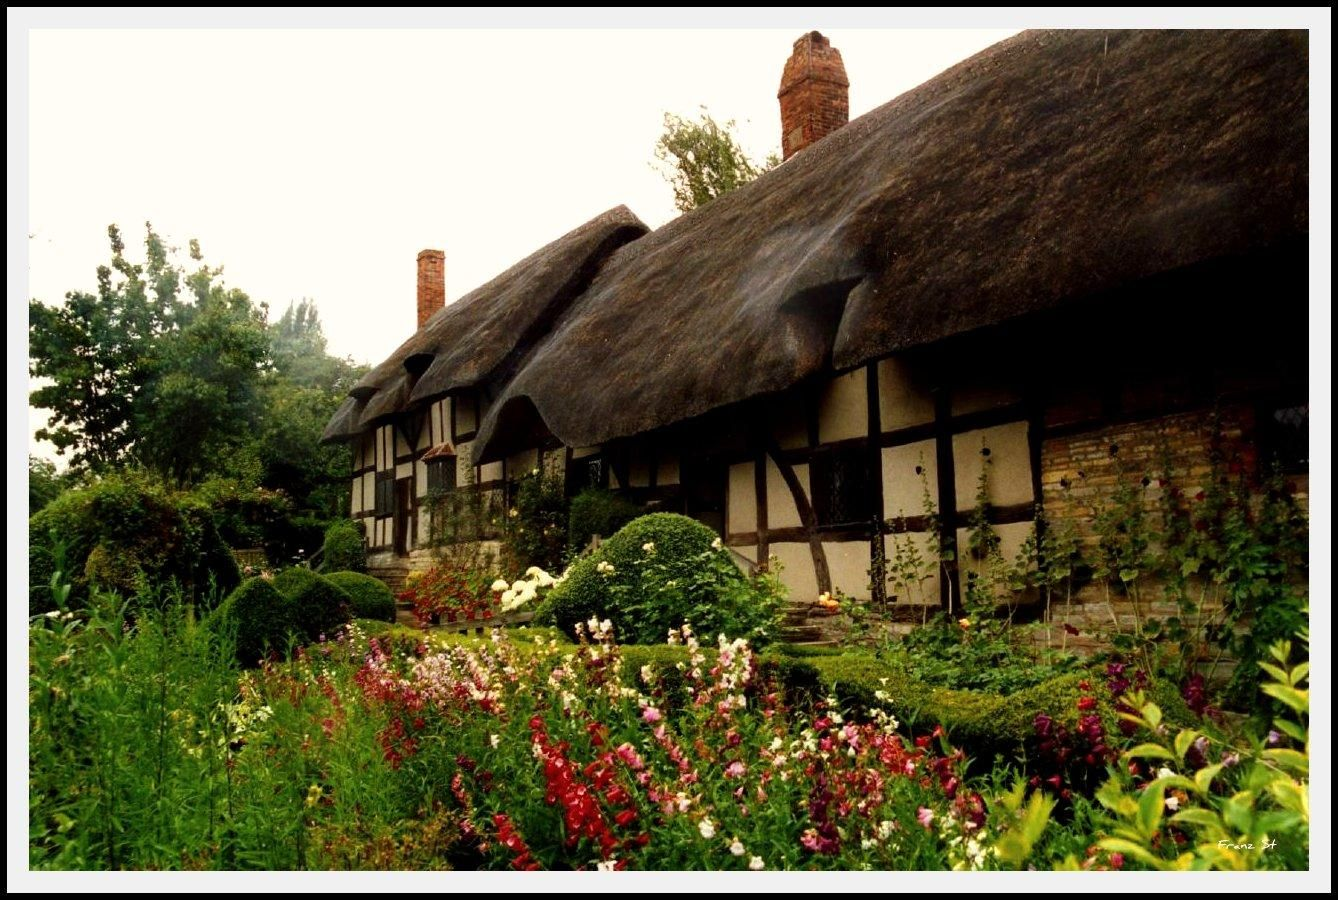 Thatched Roof ) Cottage inspiration, English cottage